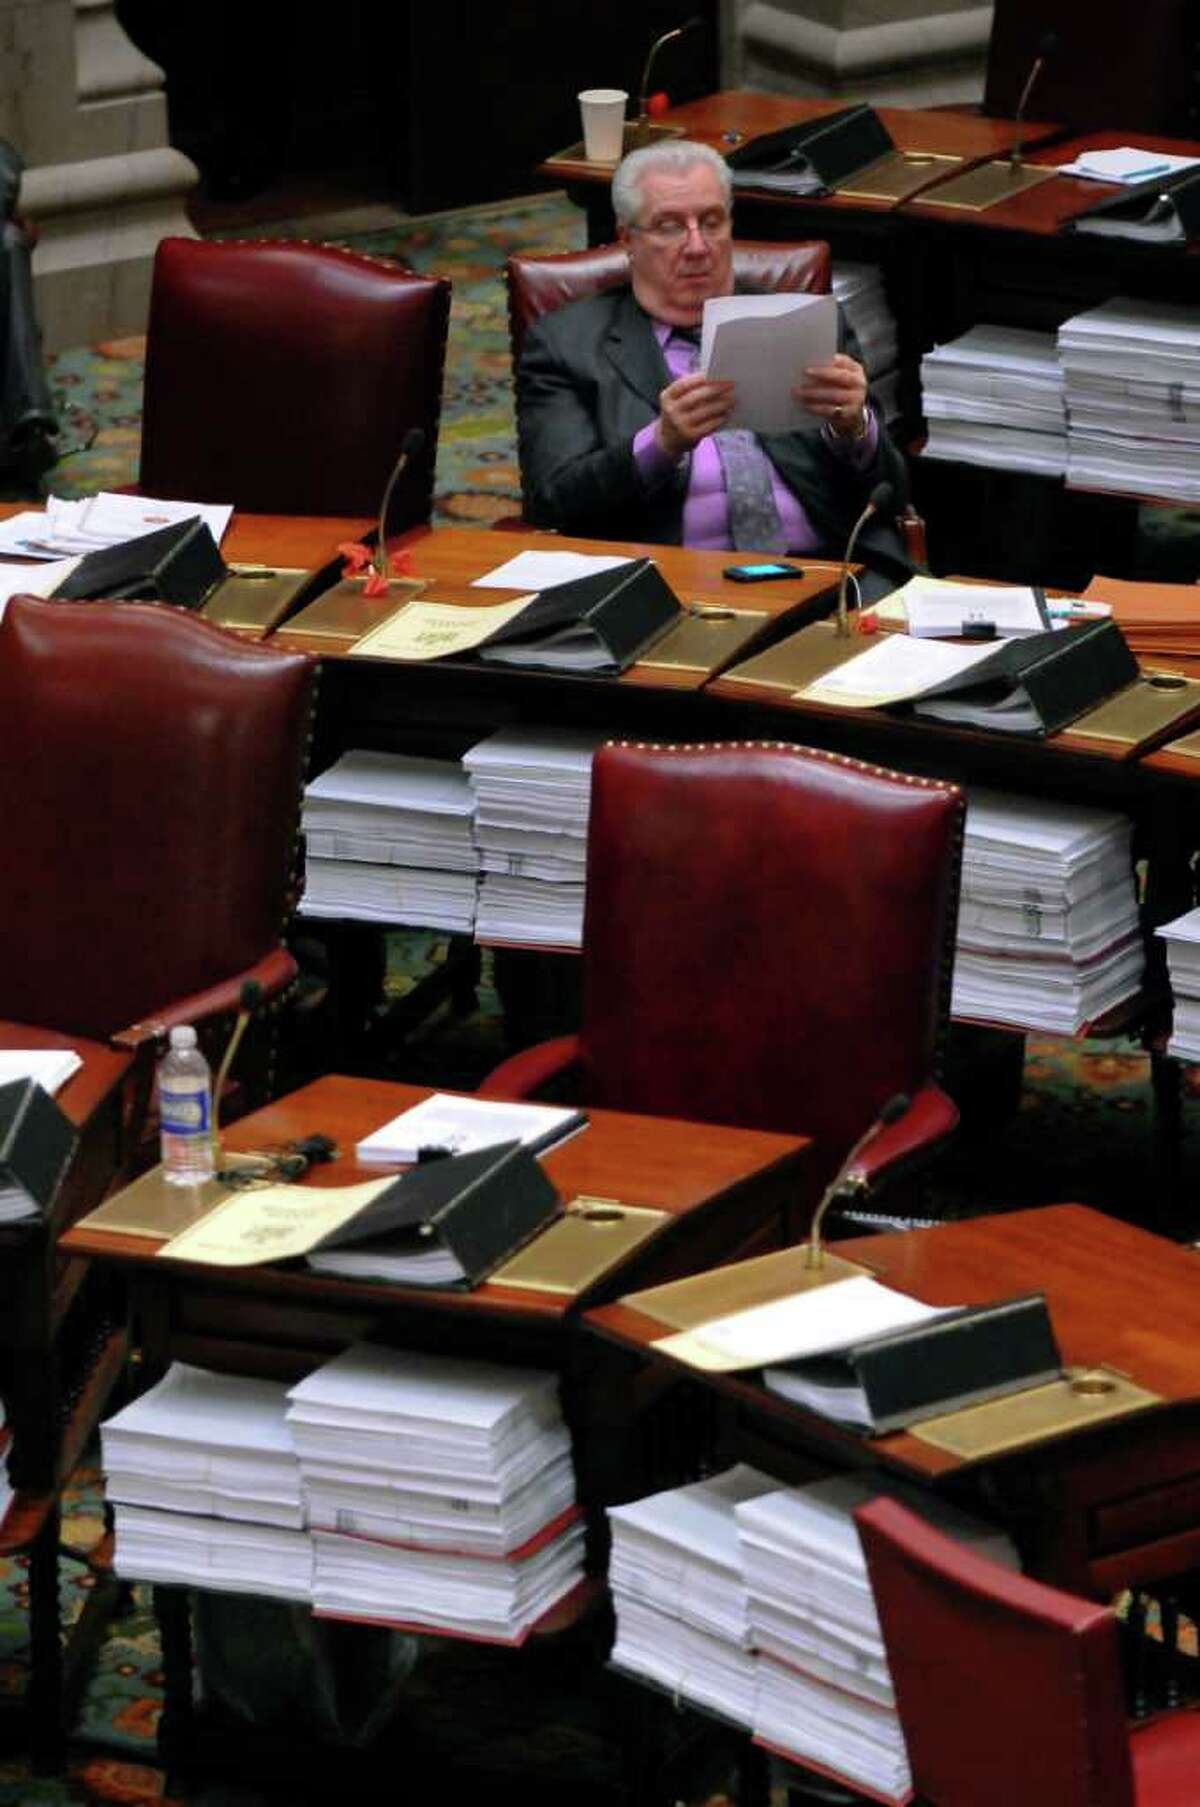 State Senator Carl L. Marcellino, a member of the Republican majority, reads on the floor of the Senate chamber at about 9 p.m. on Wednesday night March 14, 2012 in Albany, N.Y. (Philip Kamrass / Times Union )